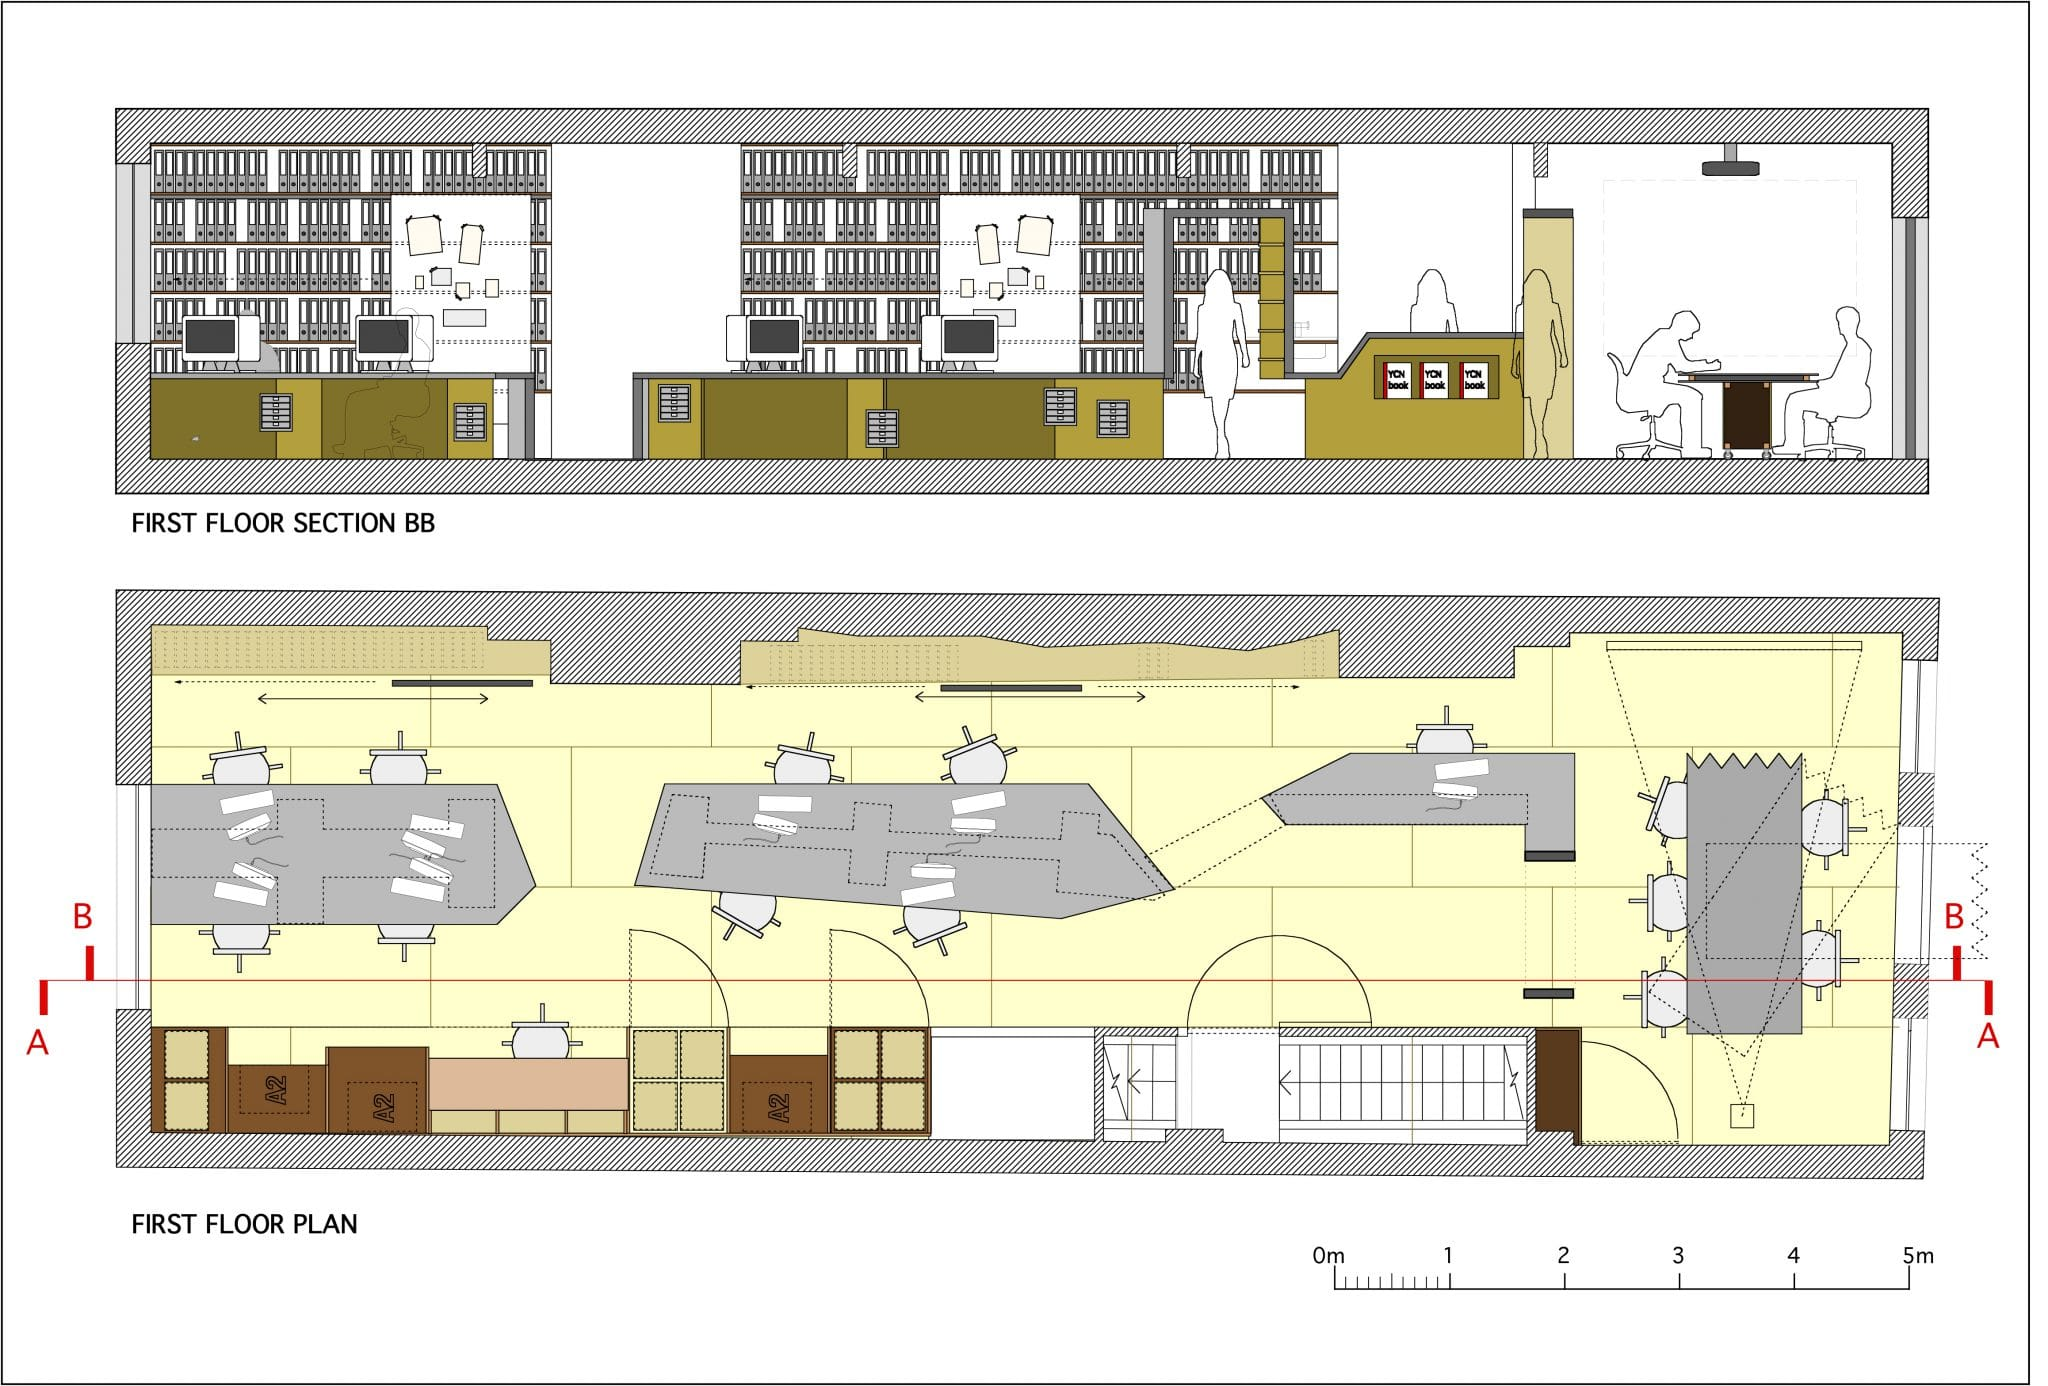 Office fit out and desk design plan and section